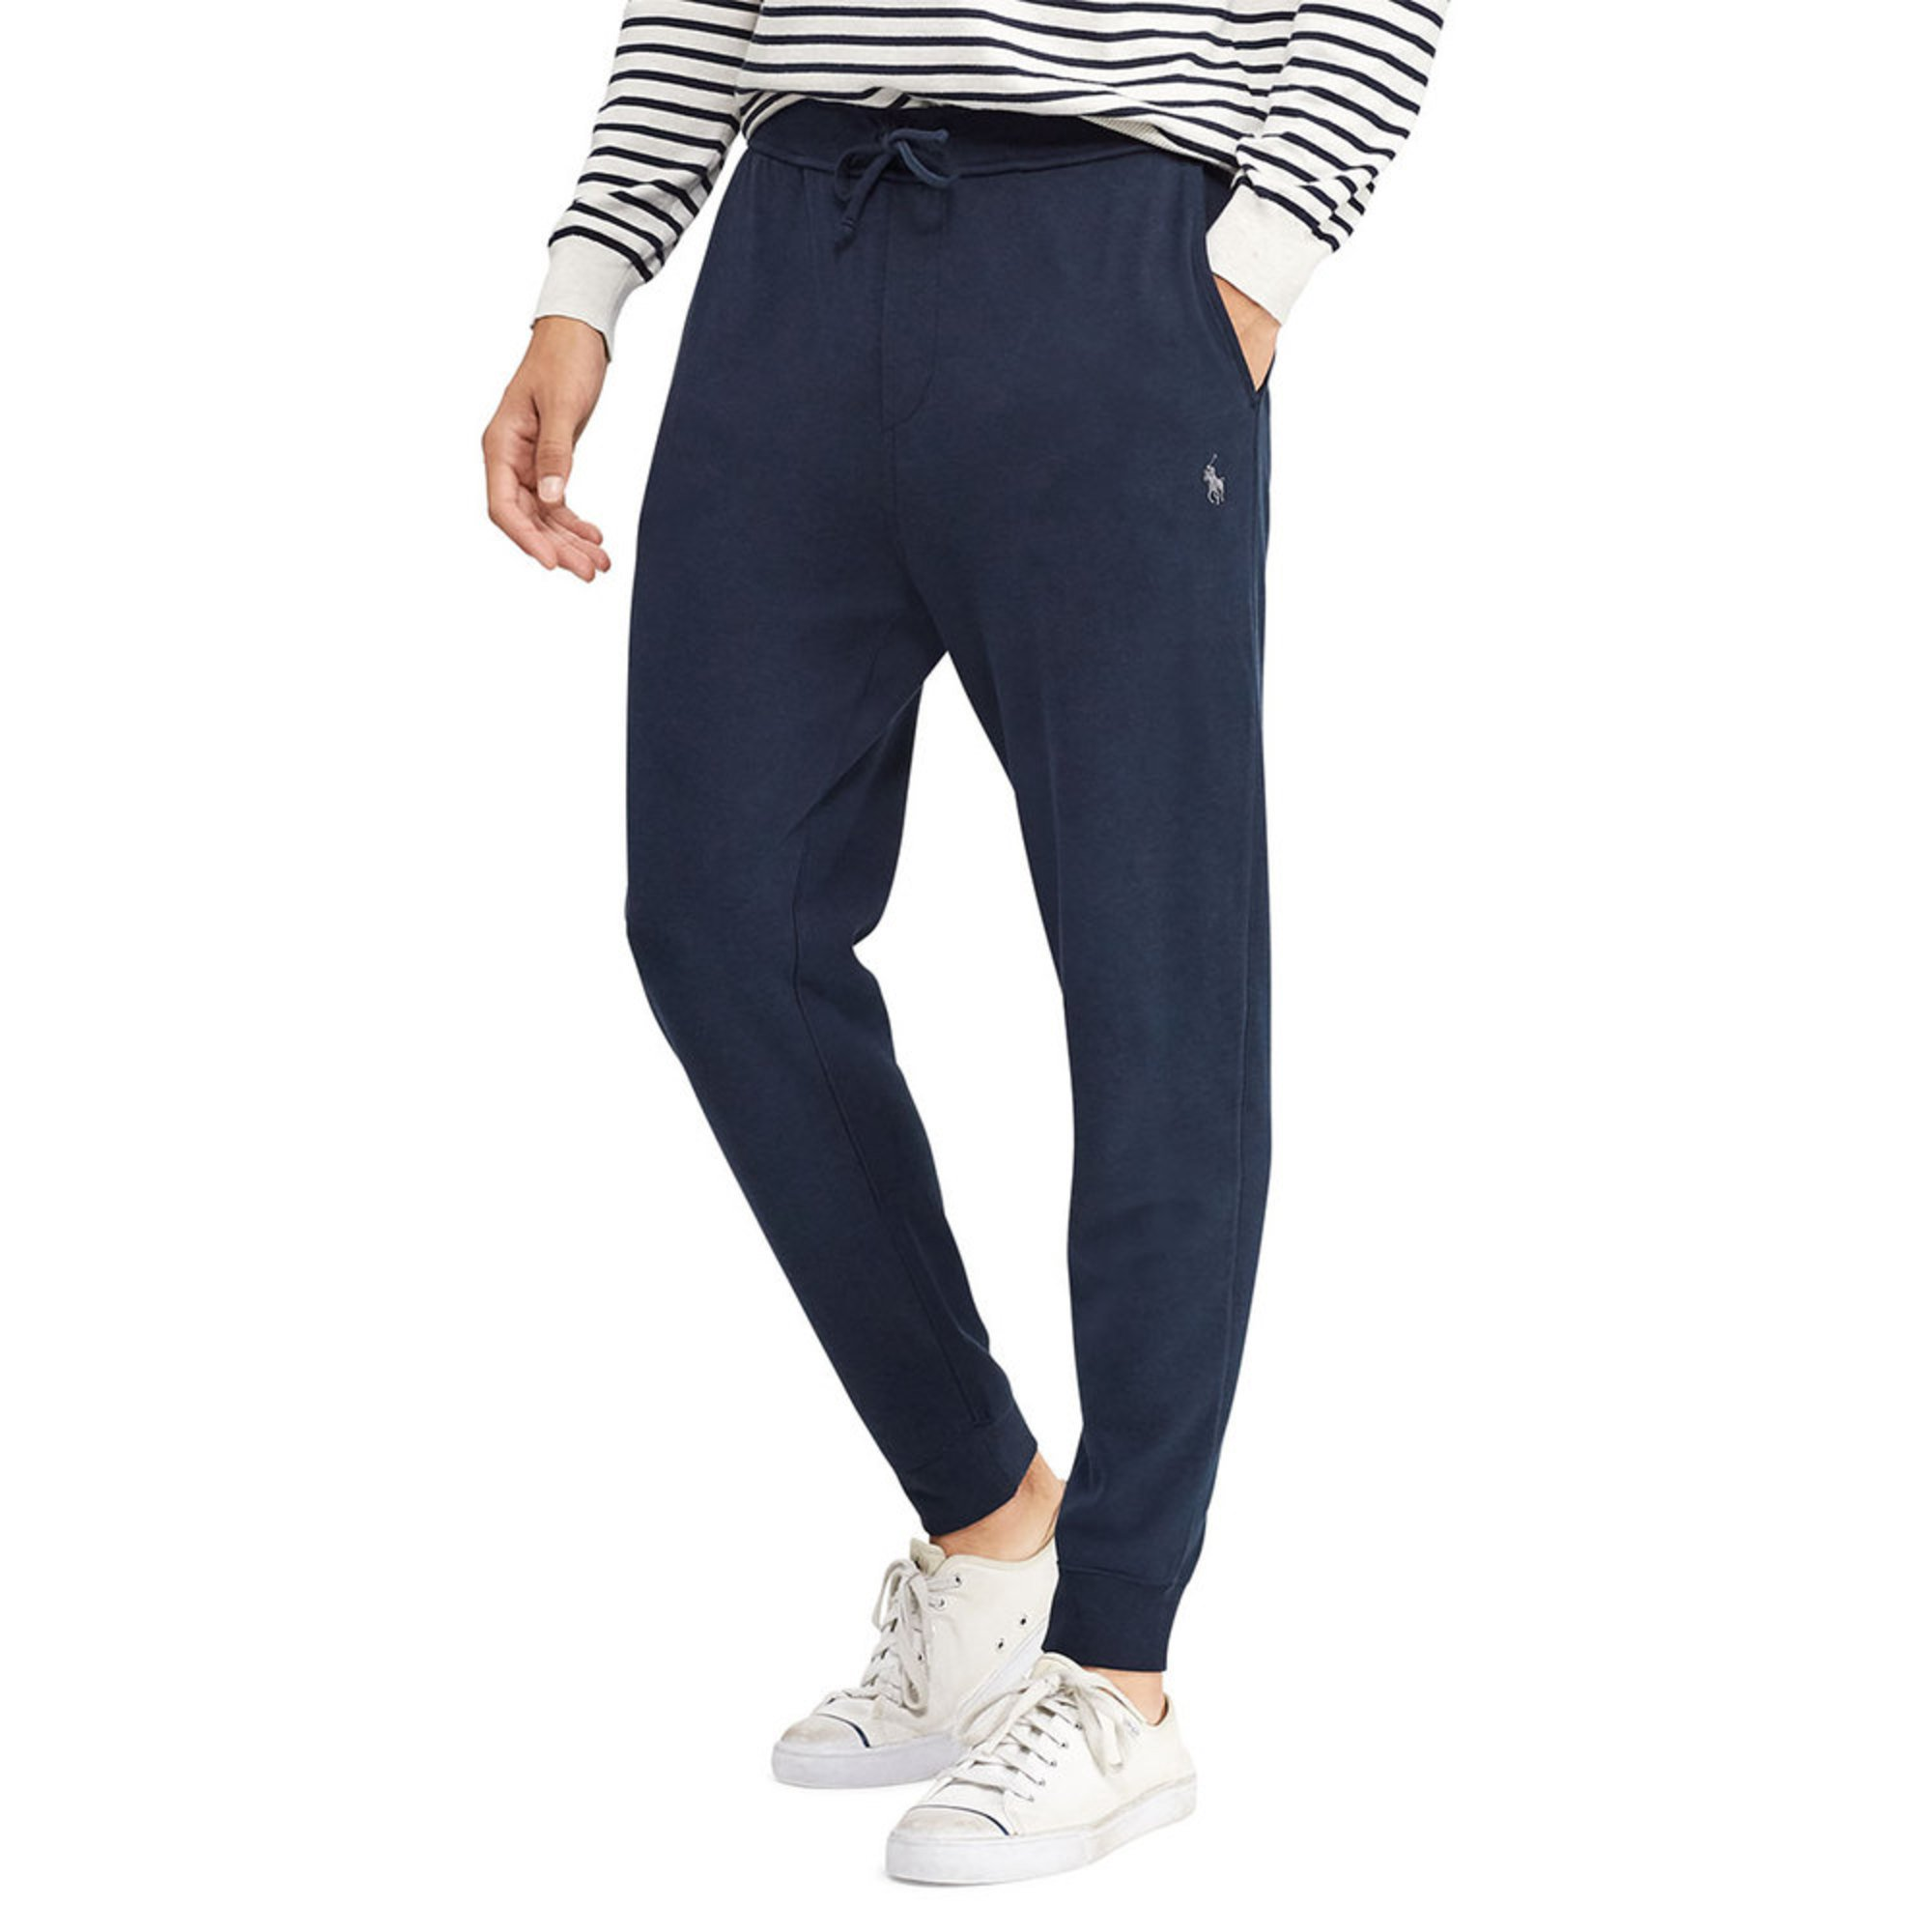 fc40fdb6e Polo Ralph Lauren. Polo Ralph Lauren Men s Double Knit Luxury Jogger